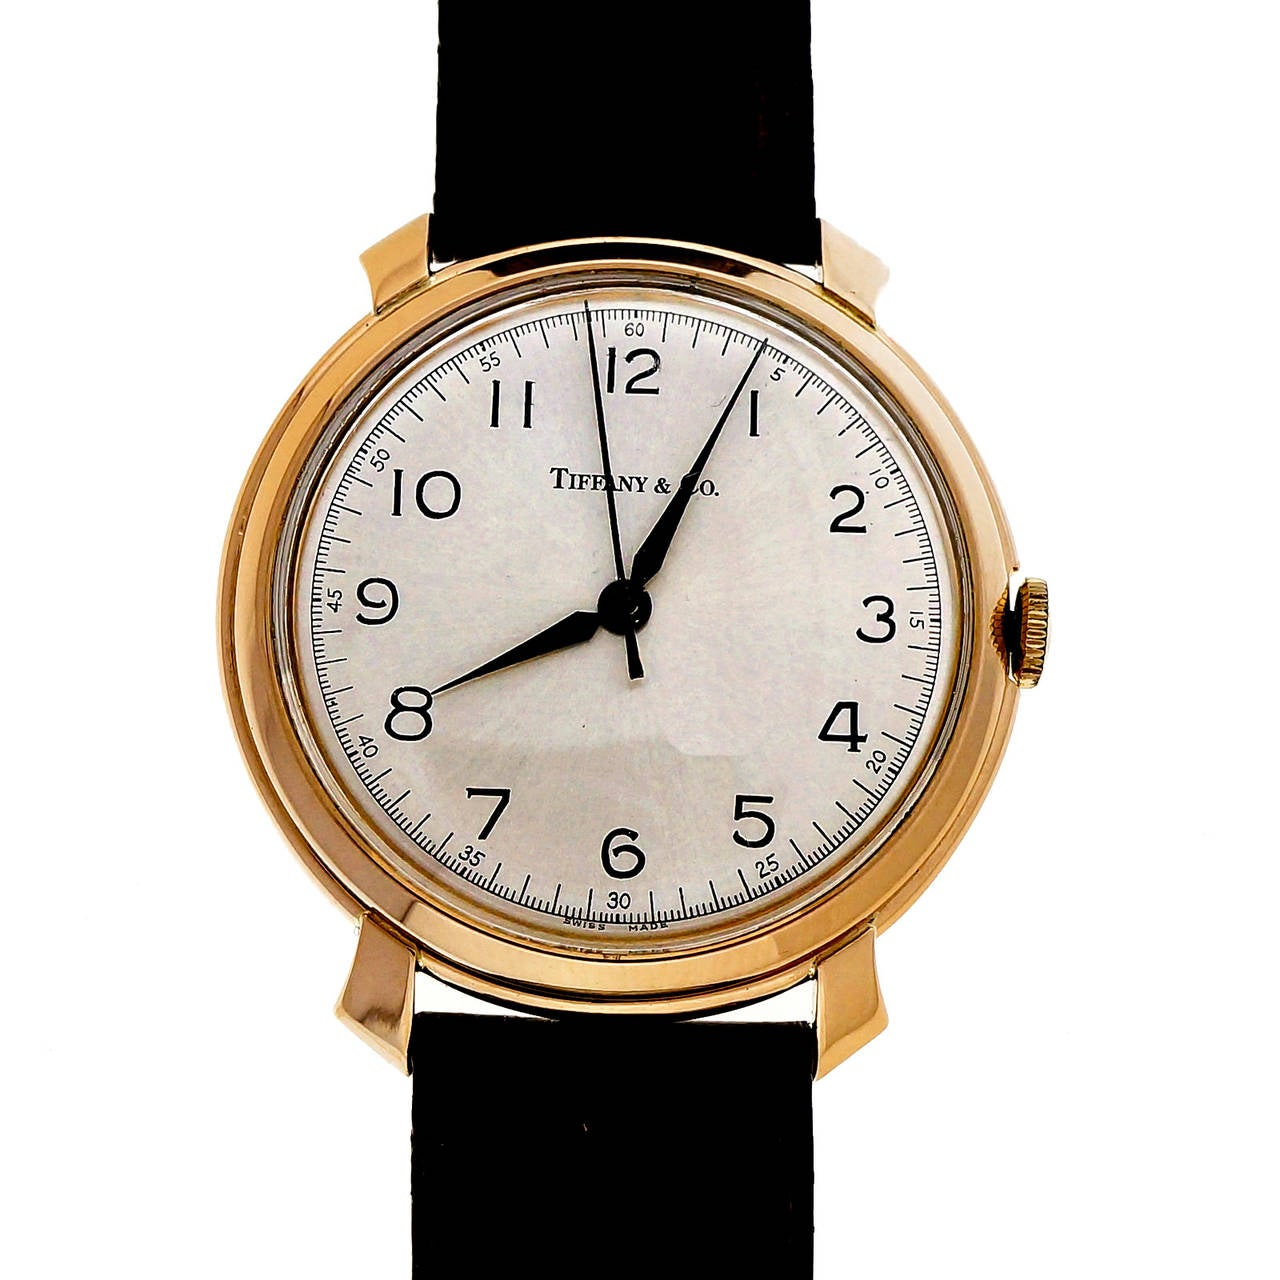 IWC Rose Gold Wristwatch Retailed by Tiffany & Co. In Good Condition For Sale In Stamford, CT